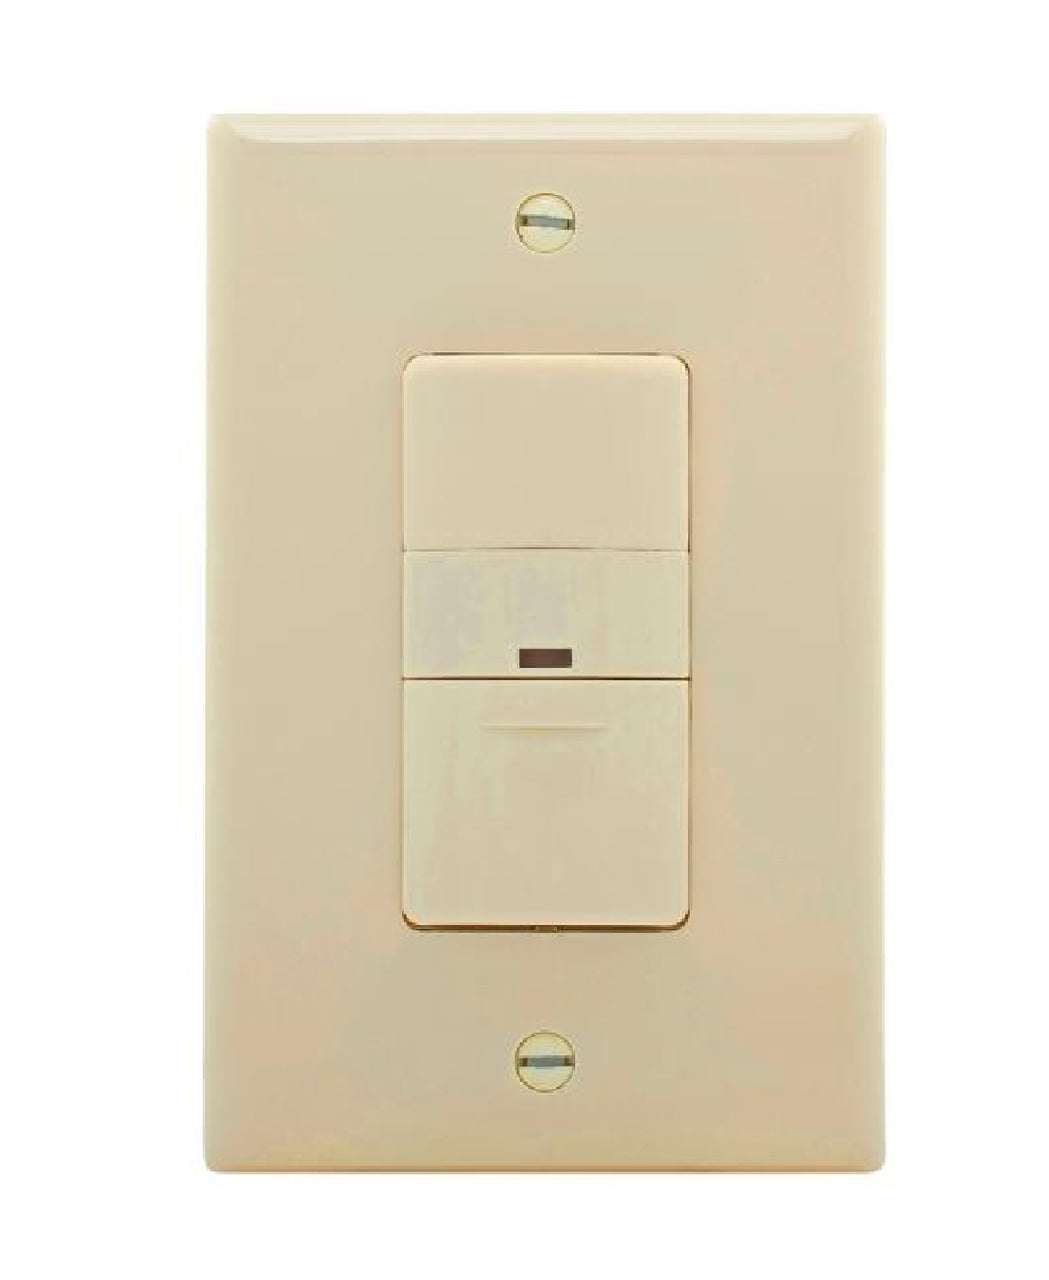 Cooper Wiring Os306u La K 3 Way Occupancy Sensor Decorator Light Switch Plate